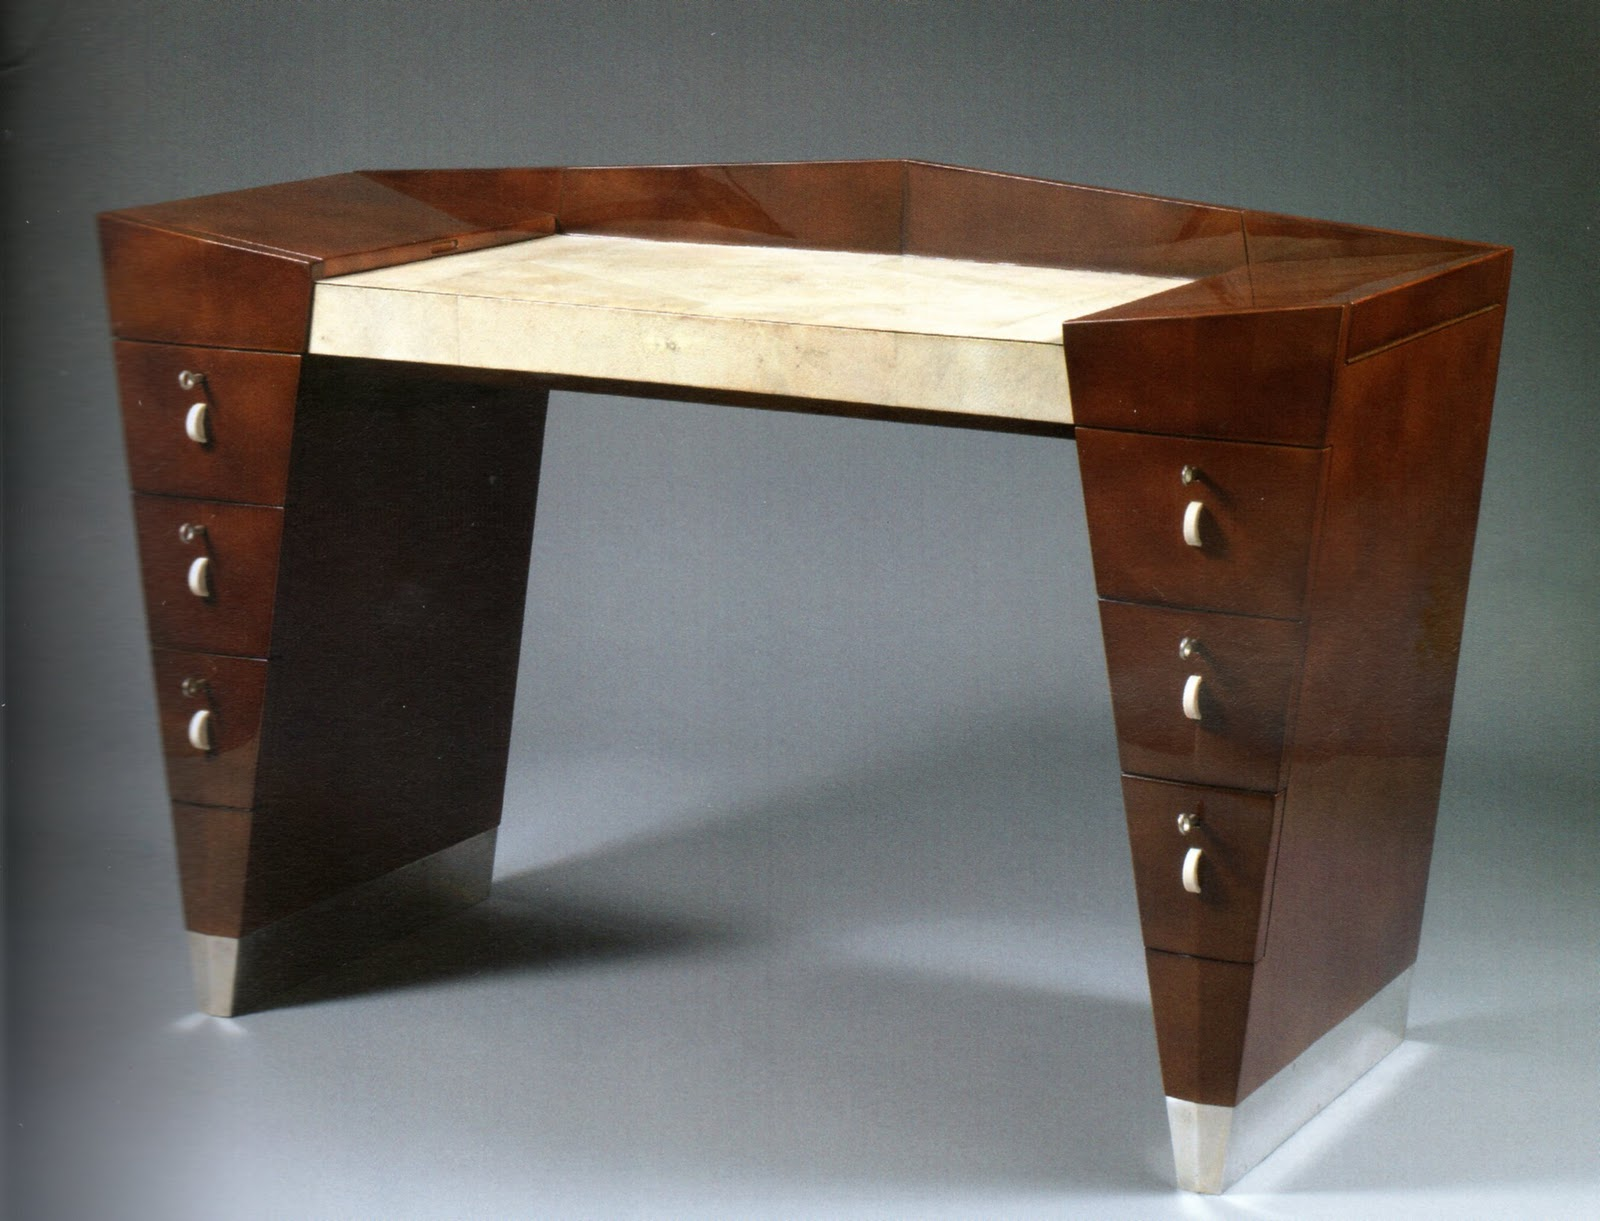 Desk by French furniture designer Léon Jallot -  Chinese lacquered solid oak with a shagreen mosaic desk top, ivory drawer pulls and feet clad in silver-toned bronze. Image courtesy:   Objectsnotpaintings.com